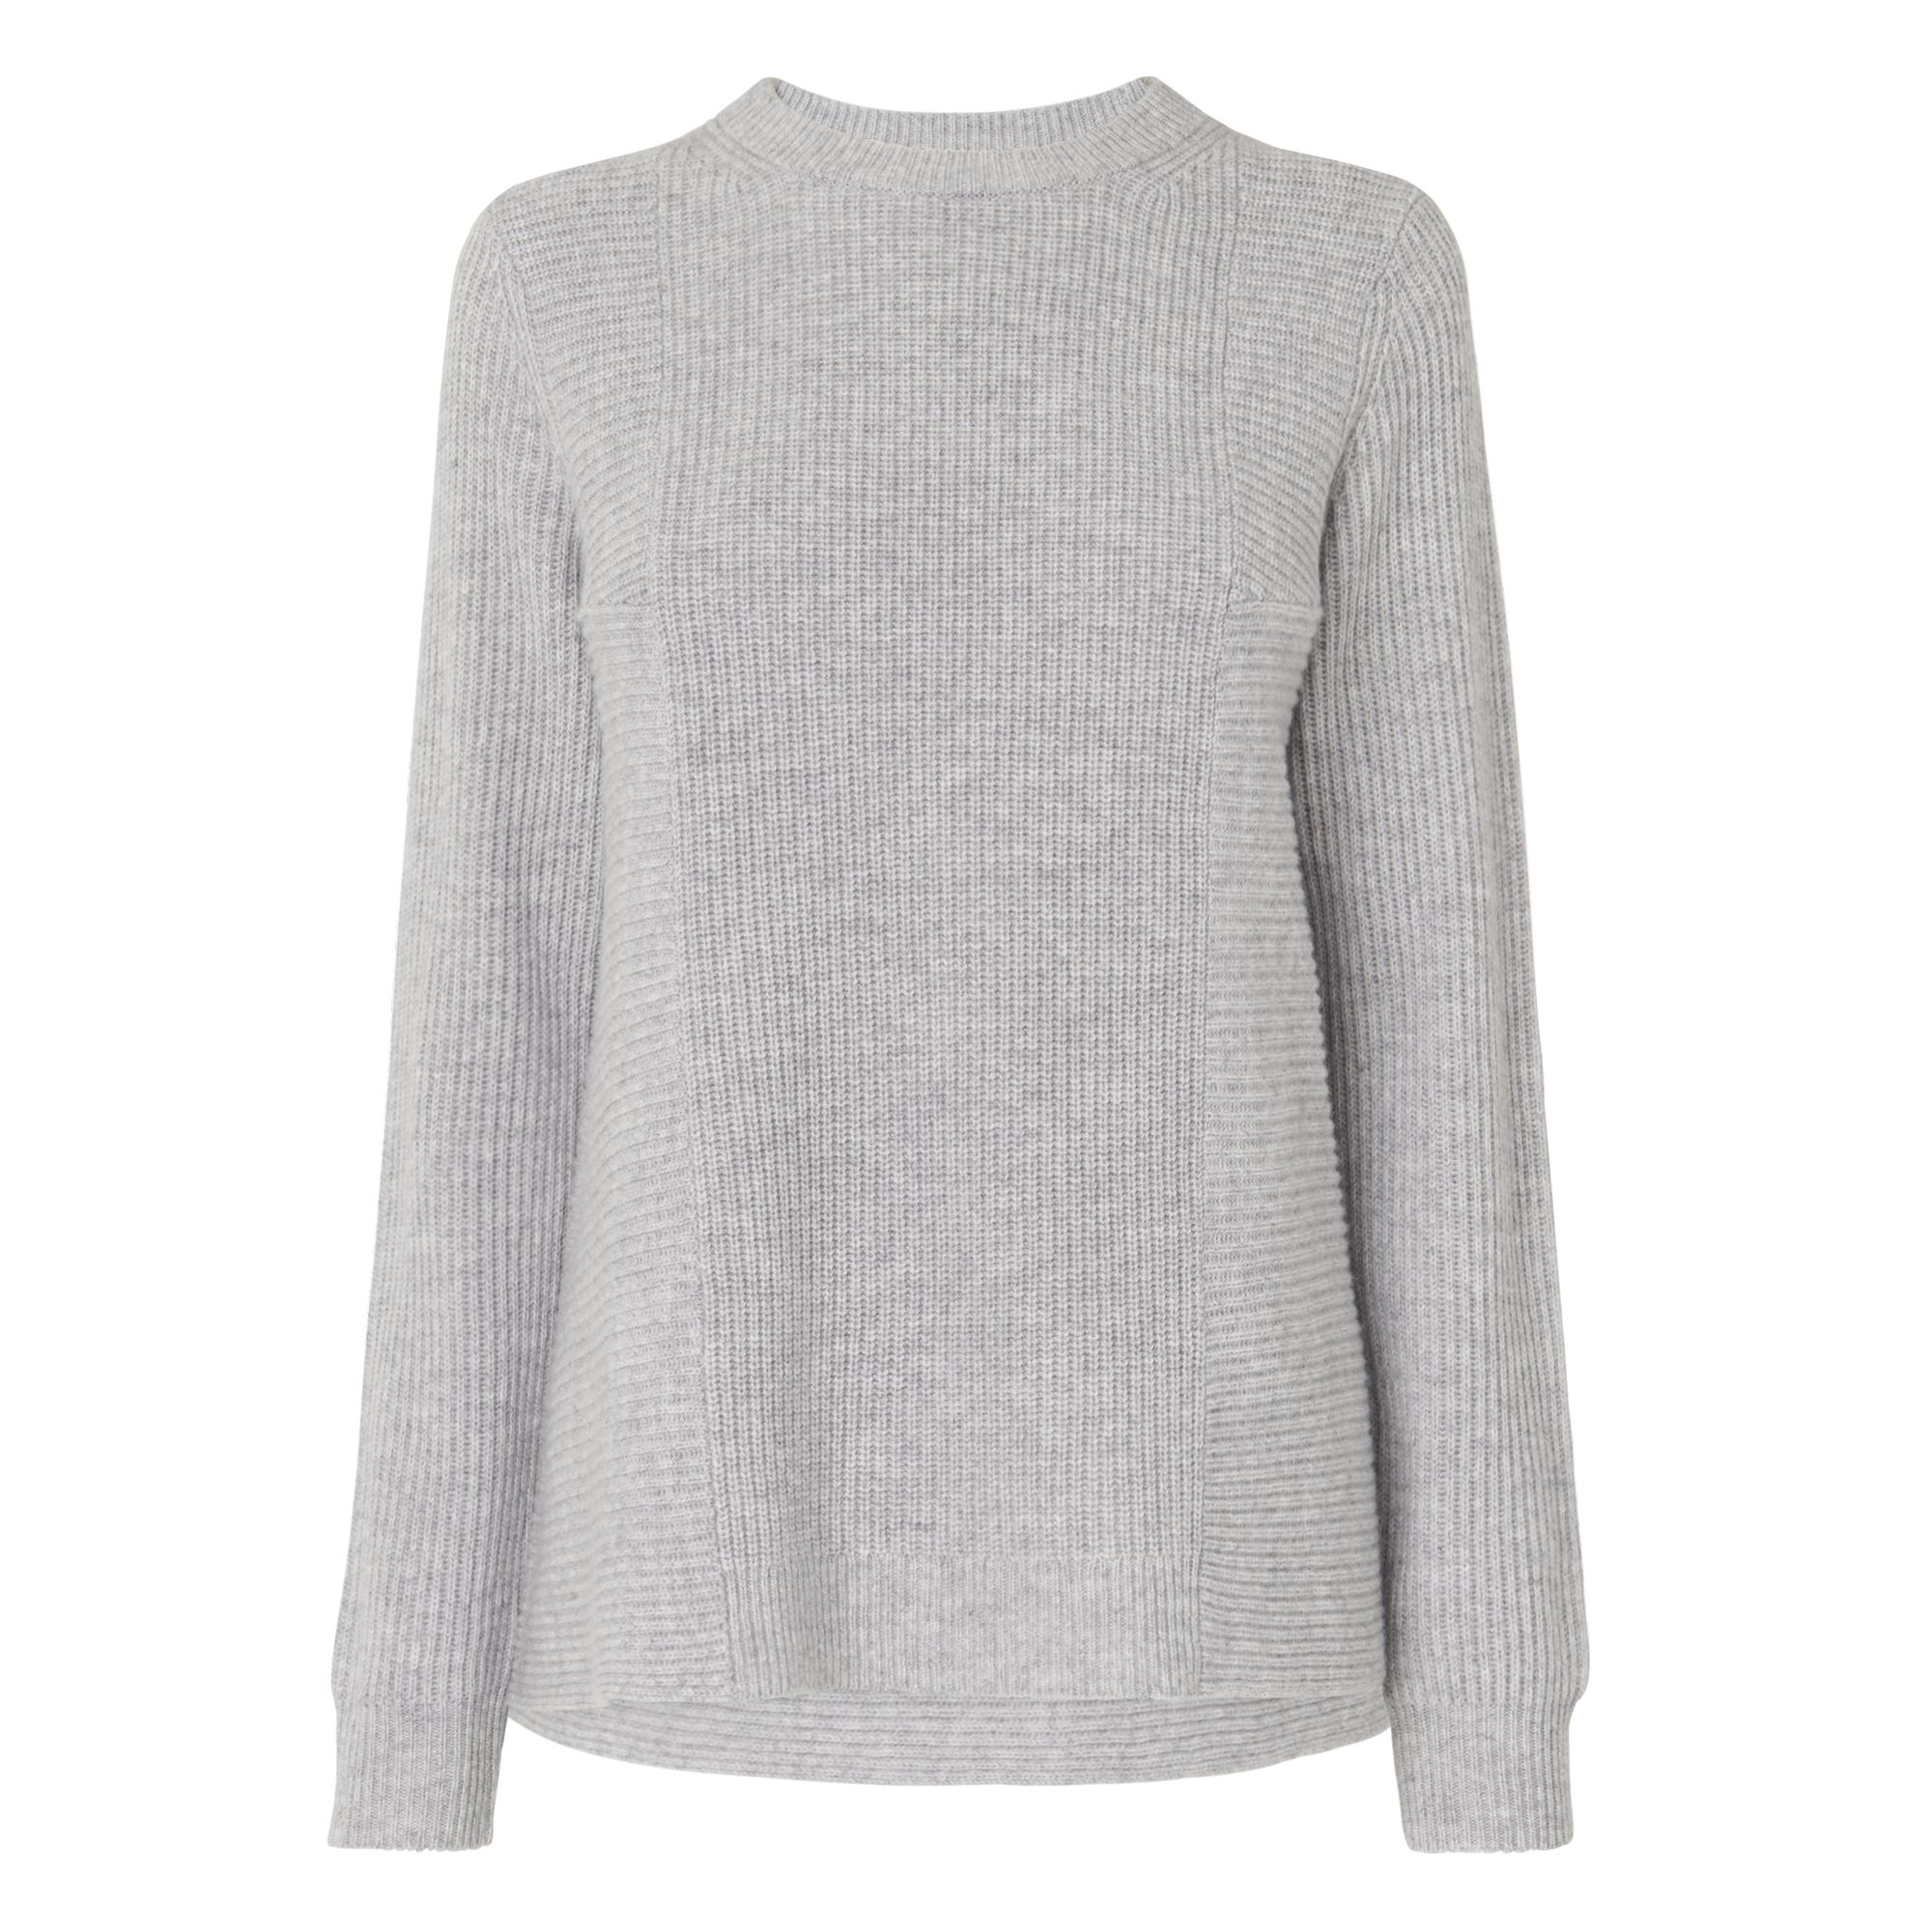 L.K.Bennett Alma Knitted Tops, Grey